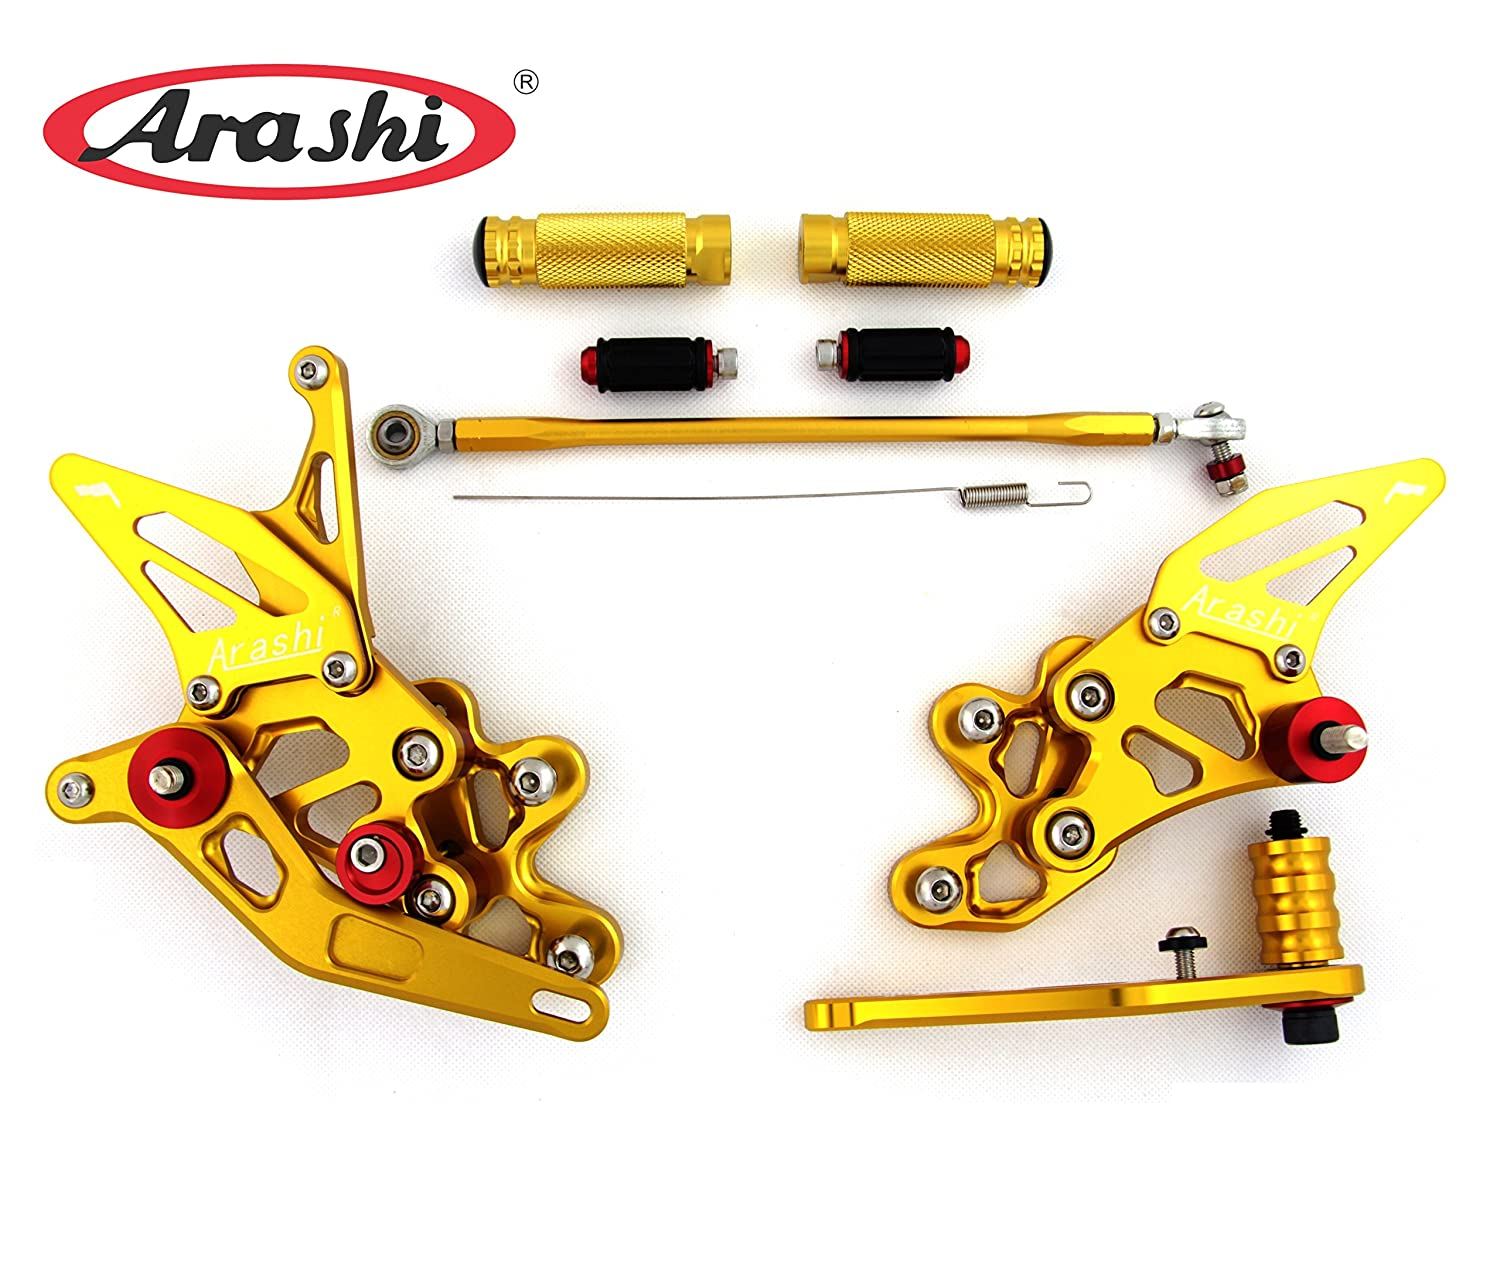 Arashi Rearsets Footrests FootPegs for SUZUKI GSXR 600 750 2006-2010 GSXR600 GSXR750 Motorcycle Accessories Adjustable Foot Peg Rest Rear Set 1 Set Gold GSX-R 600 750 2007 2008 2009